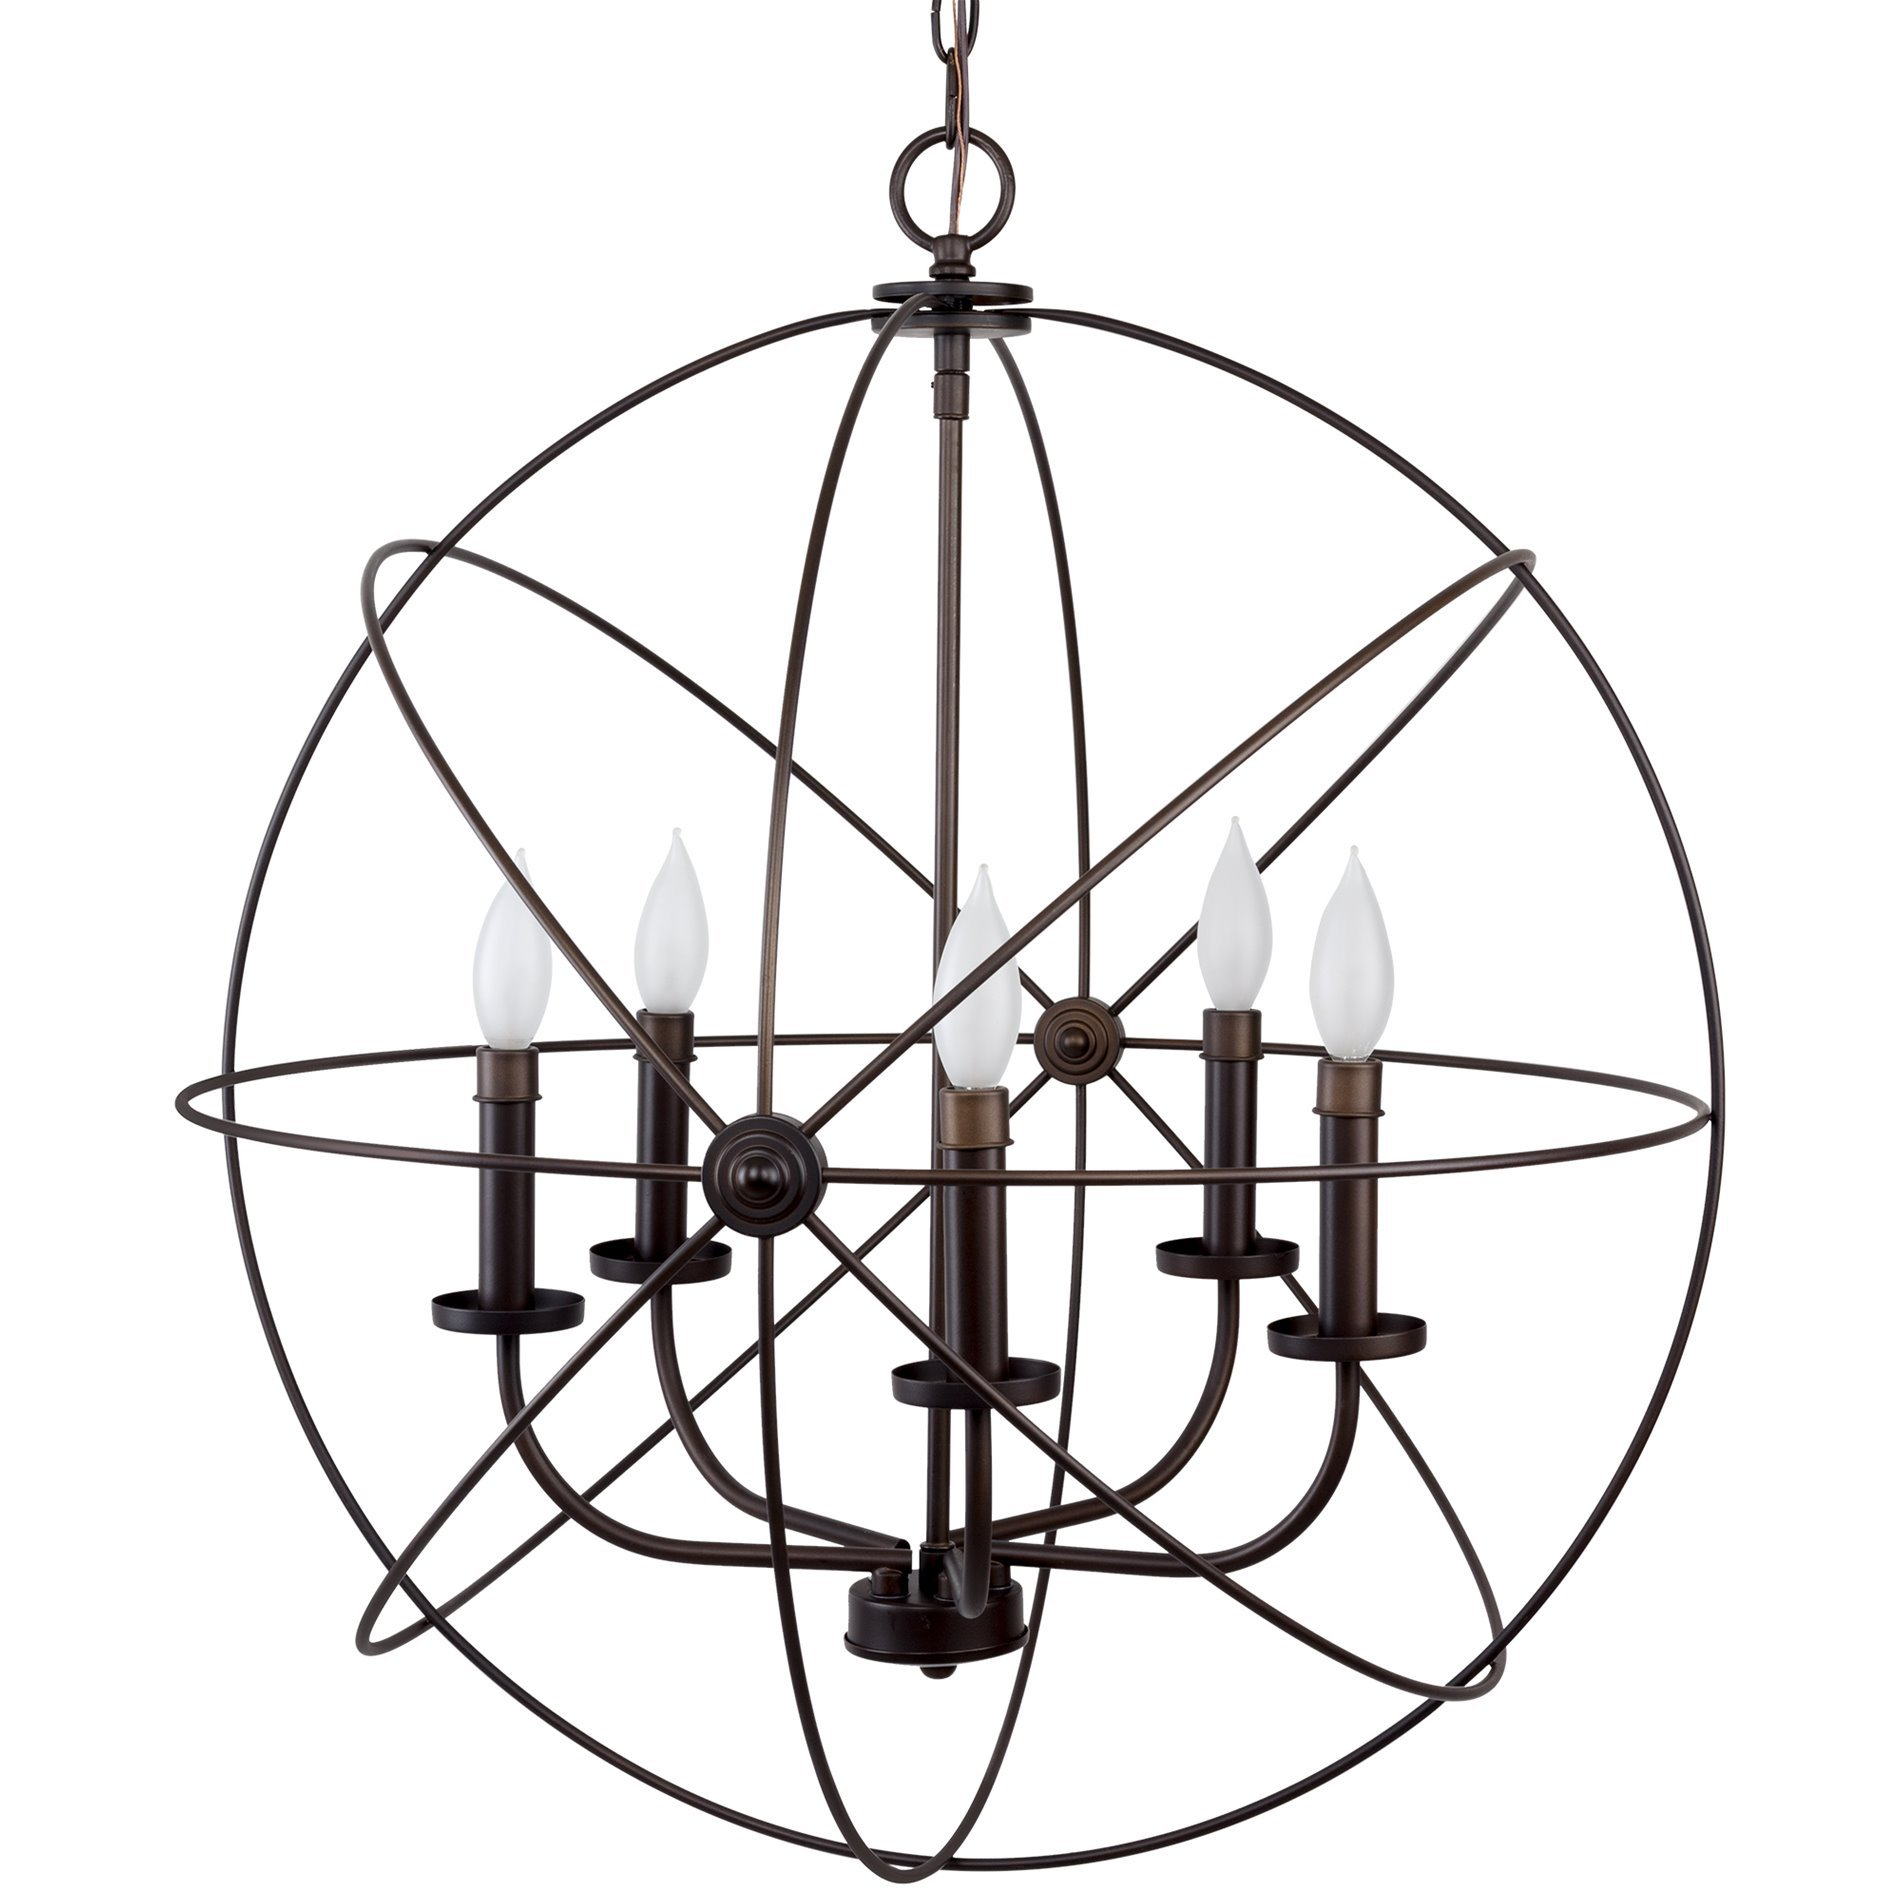 Revel Orbits II Large 24'' 5-Light Modern Sphere/Orb Chandelier Bronze by Revel